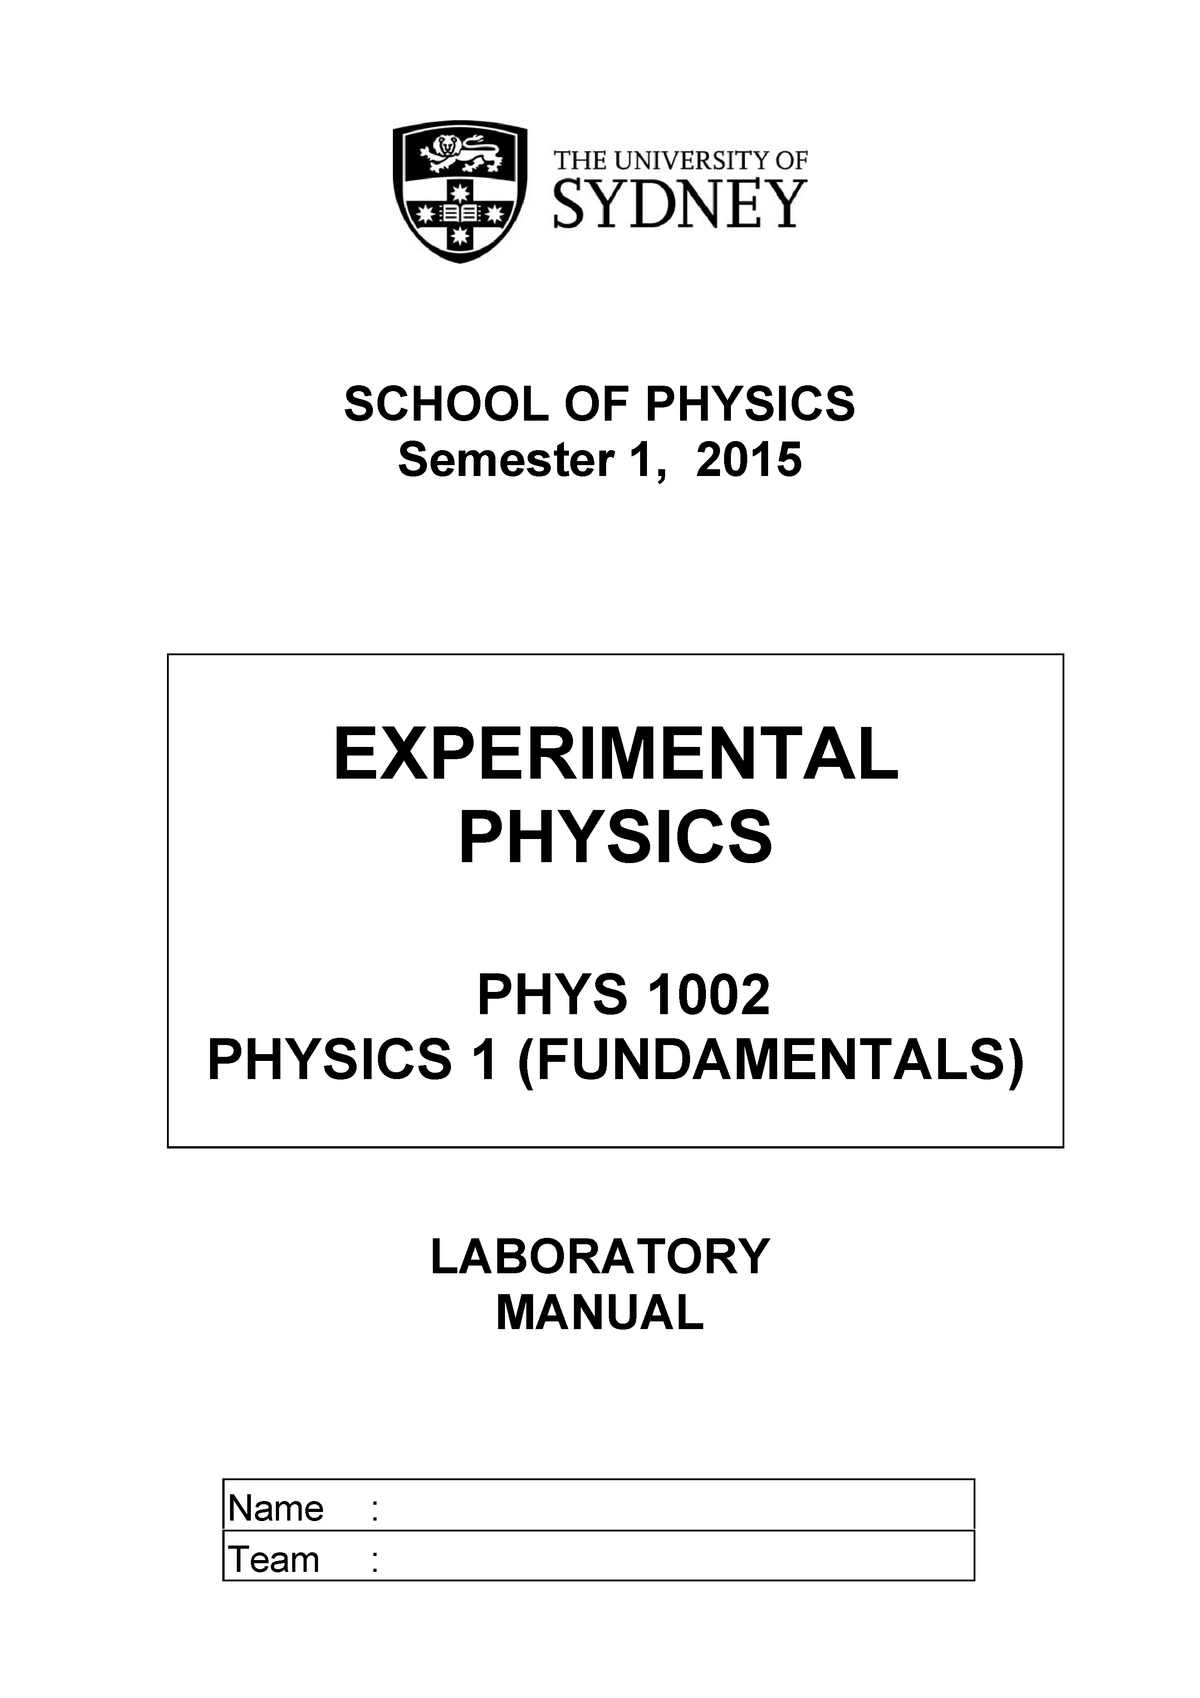 Practical - lab manual - PHYS1002: Physics 1 (Fundamentals) - StuDocu